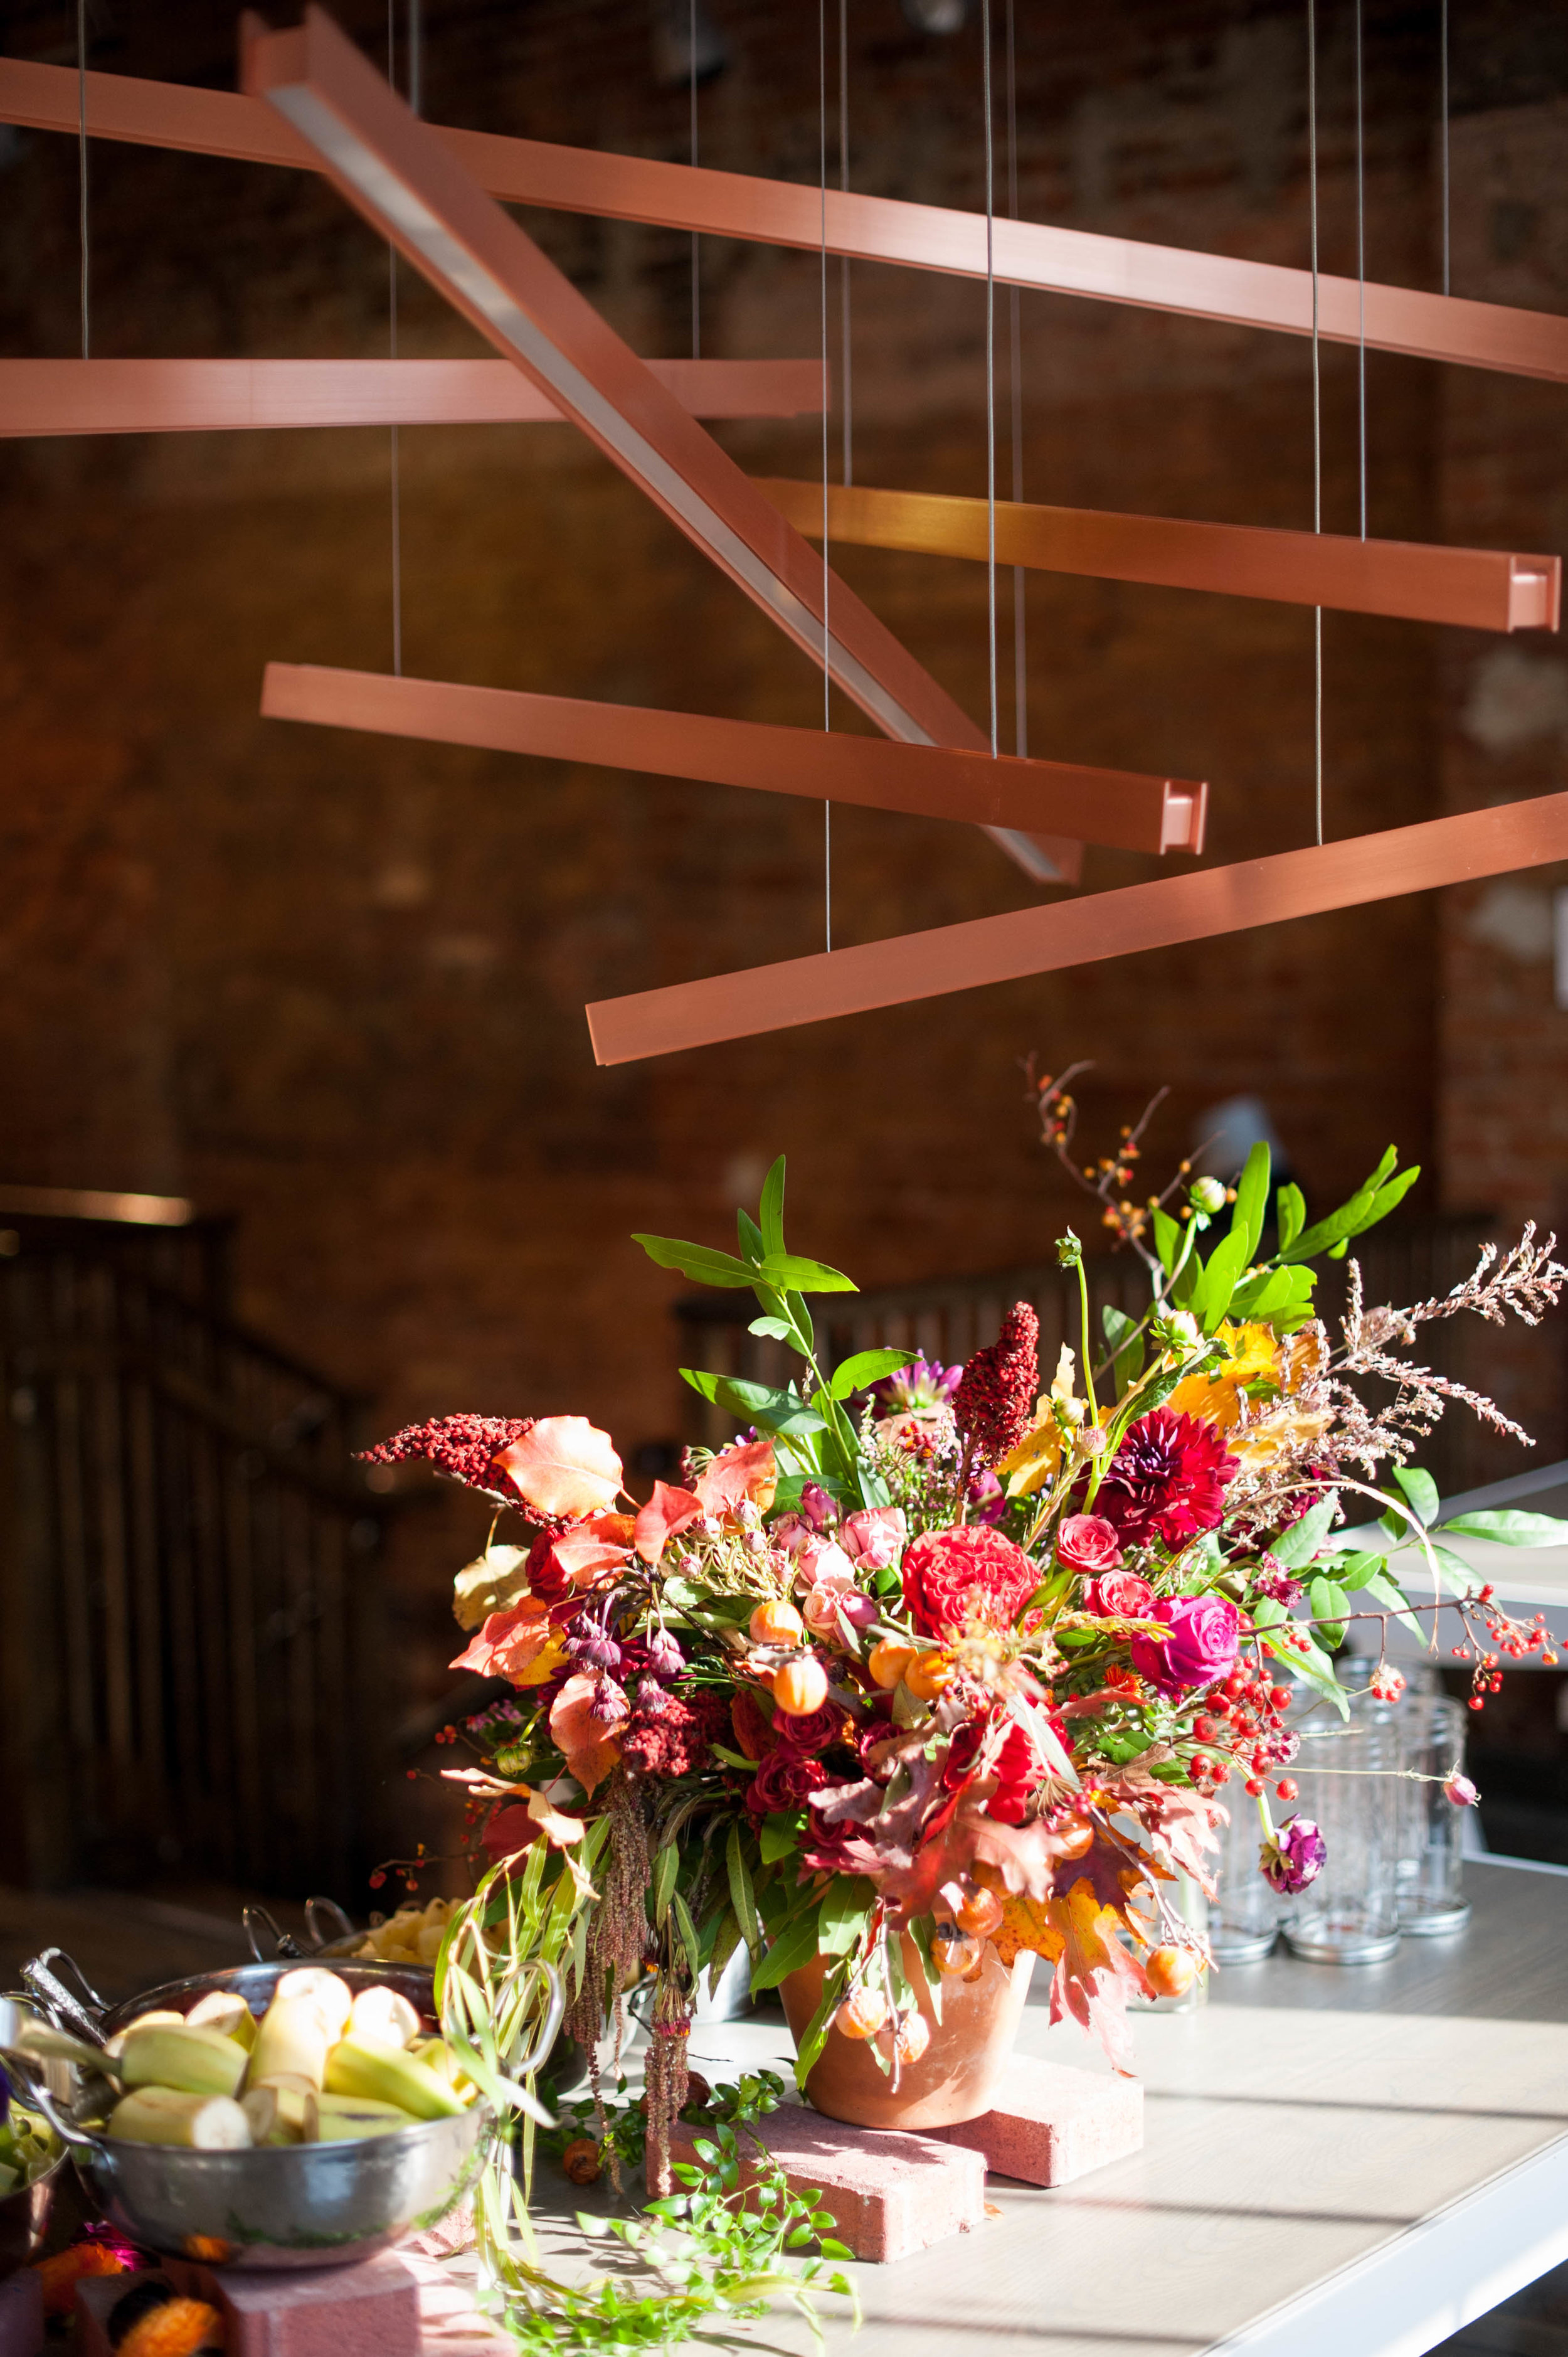 Flowers by  Darling & Daughters @darlinganddaughters adorn the build your own smooth bar by @greenheartjuiceshop.